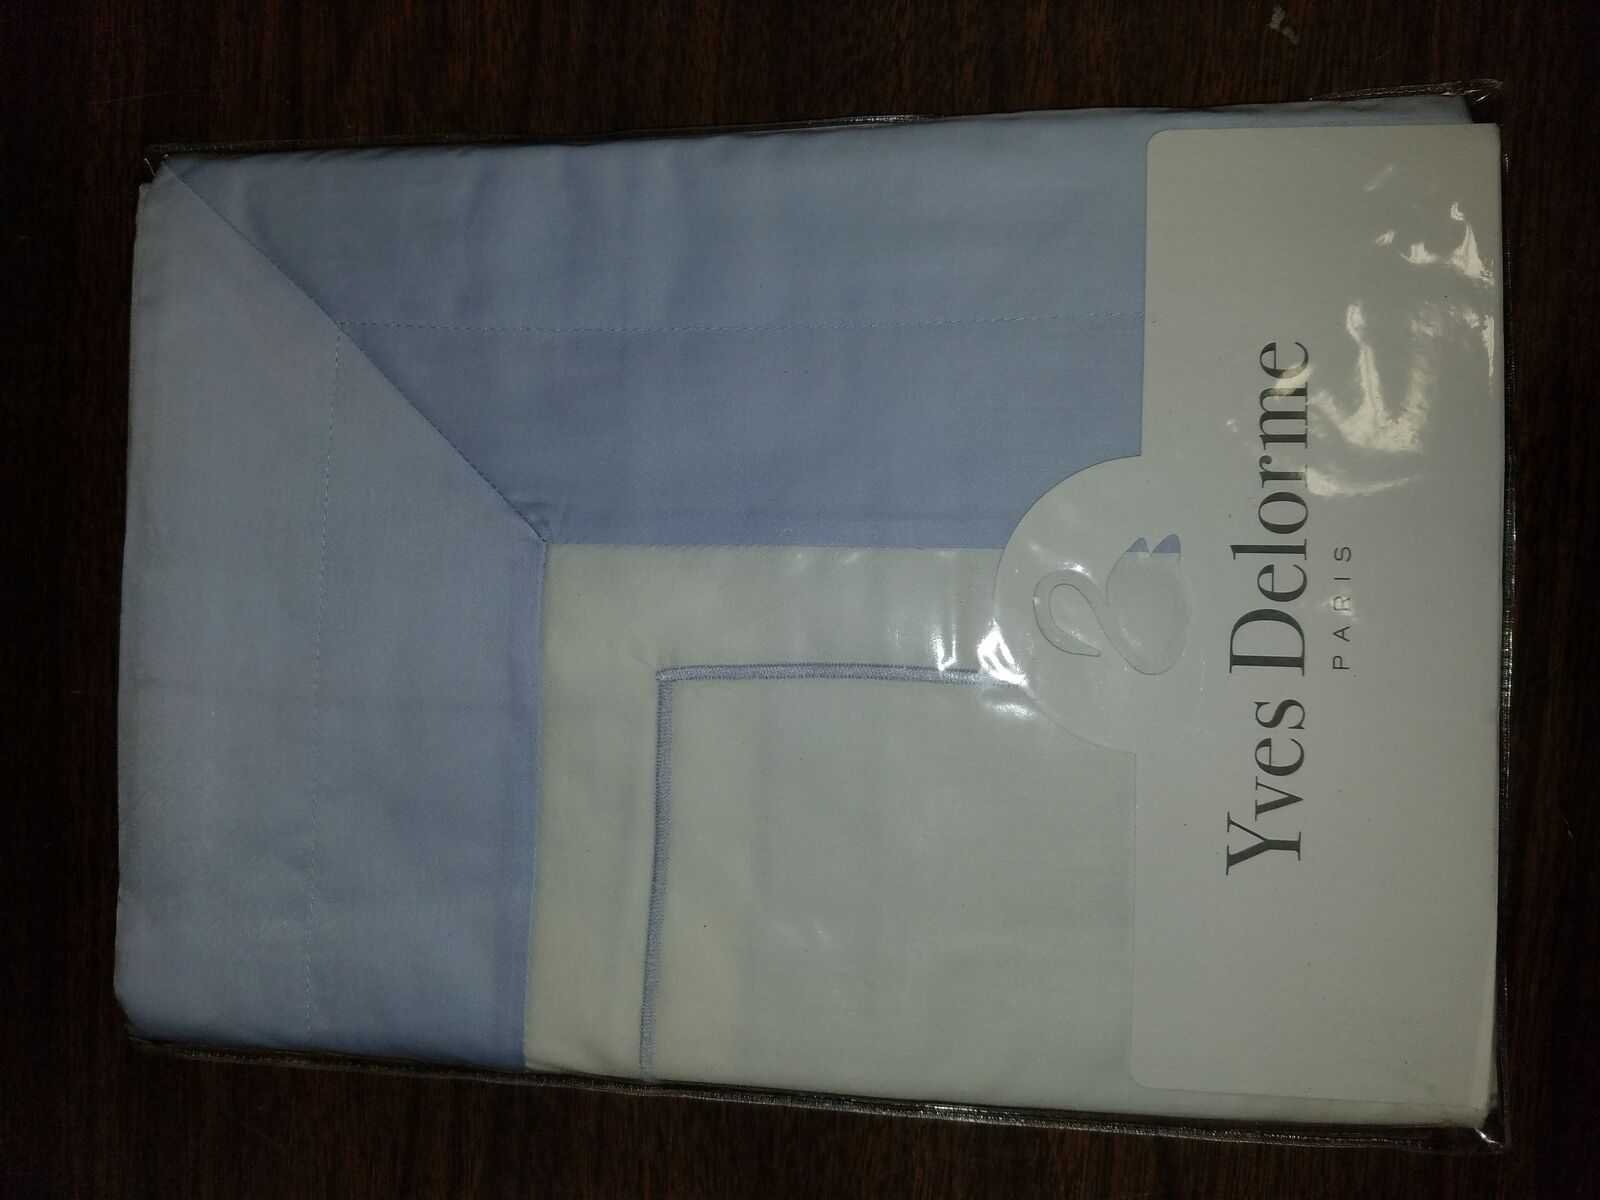 FRANCE YVES DELORME LUTECE WHITE COTTON SATEEN PILLOWCASE COLOR FLANGE Opalia